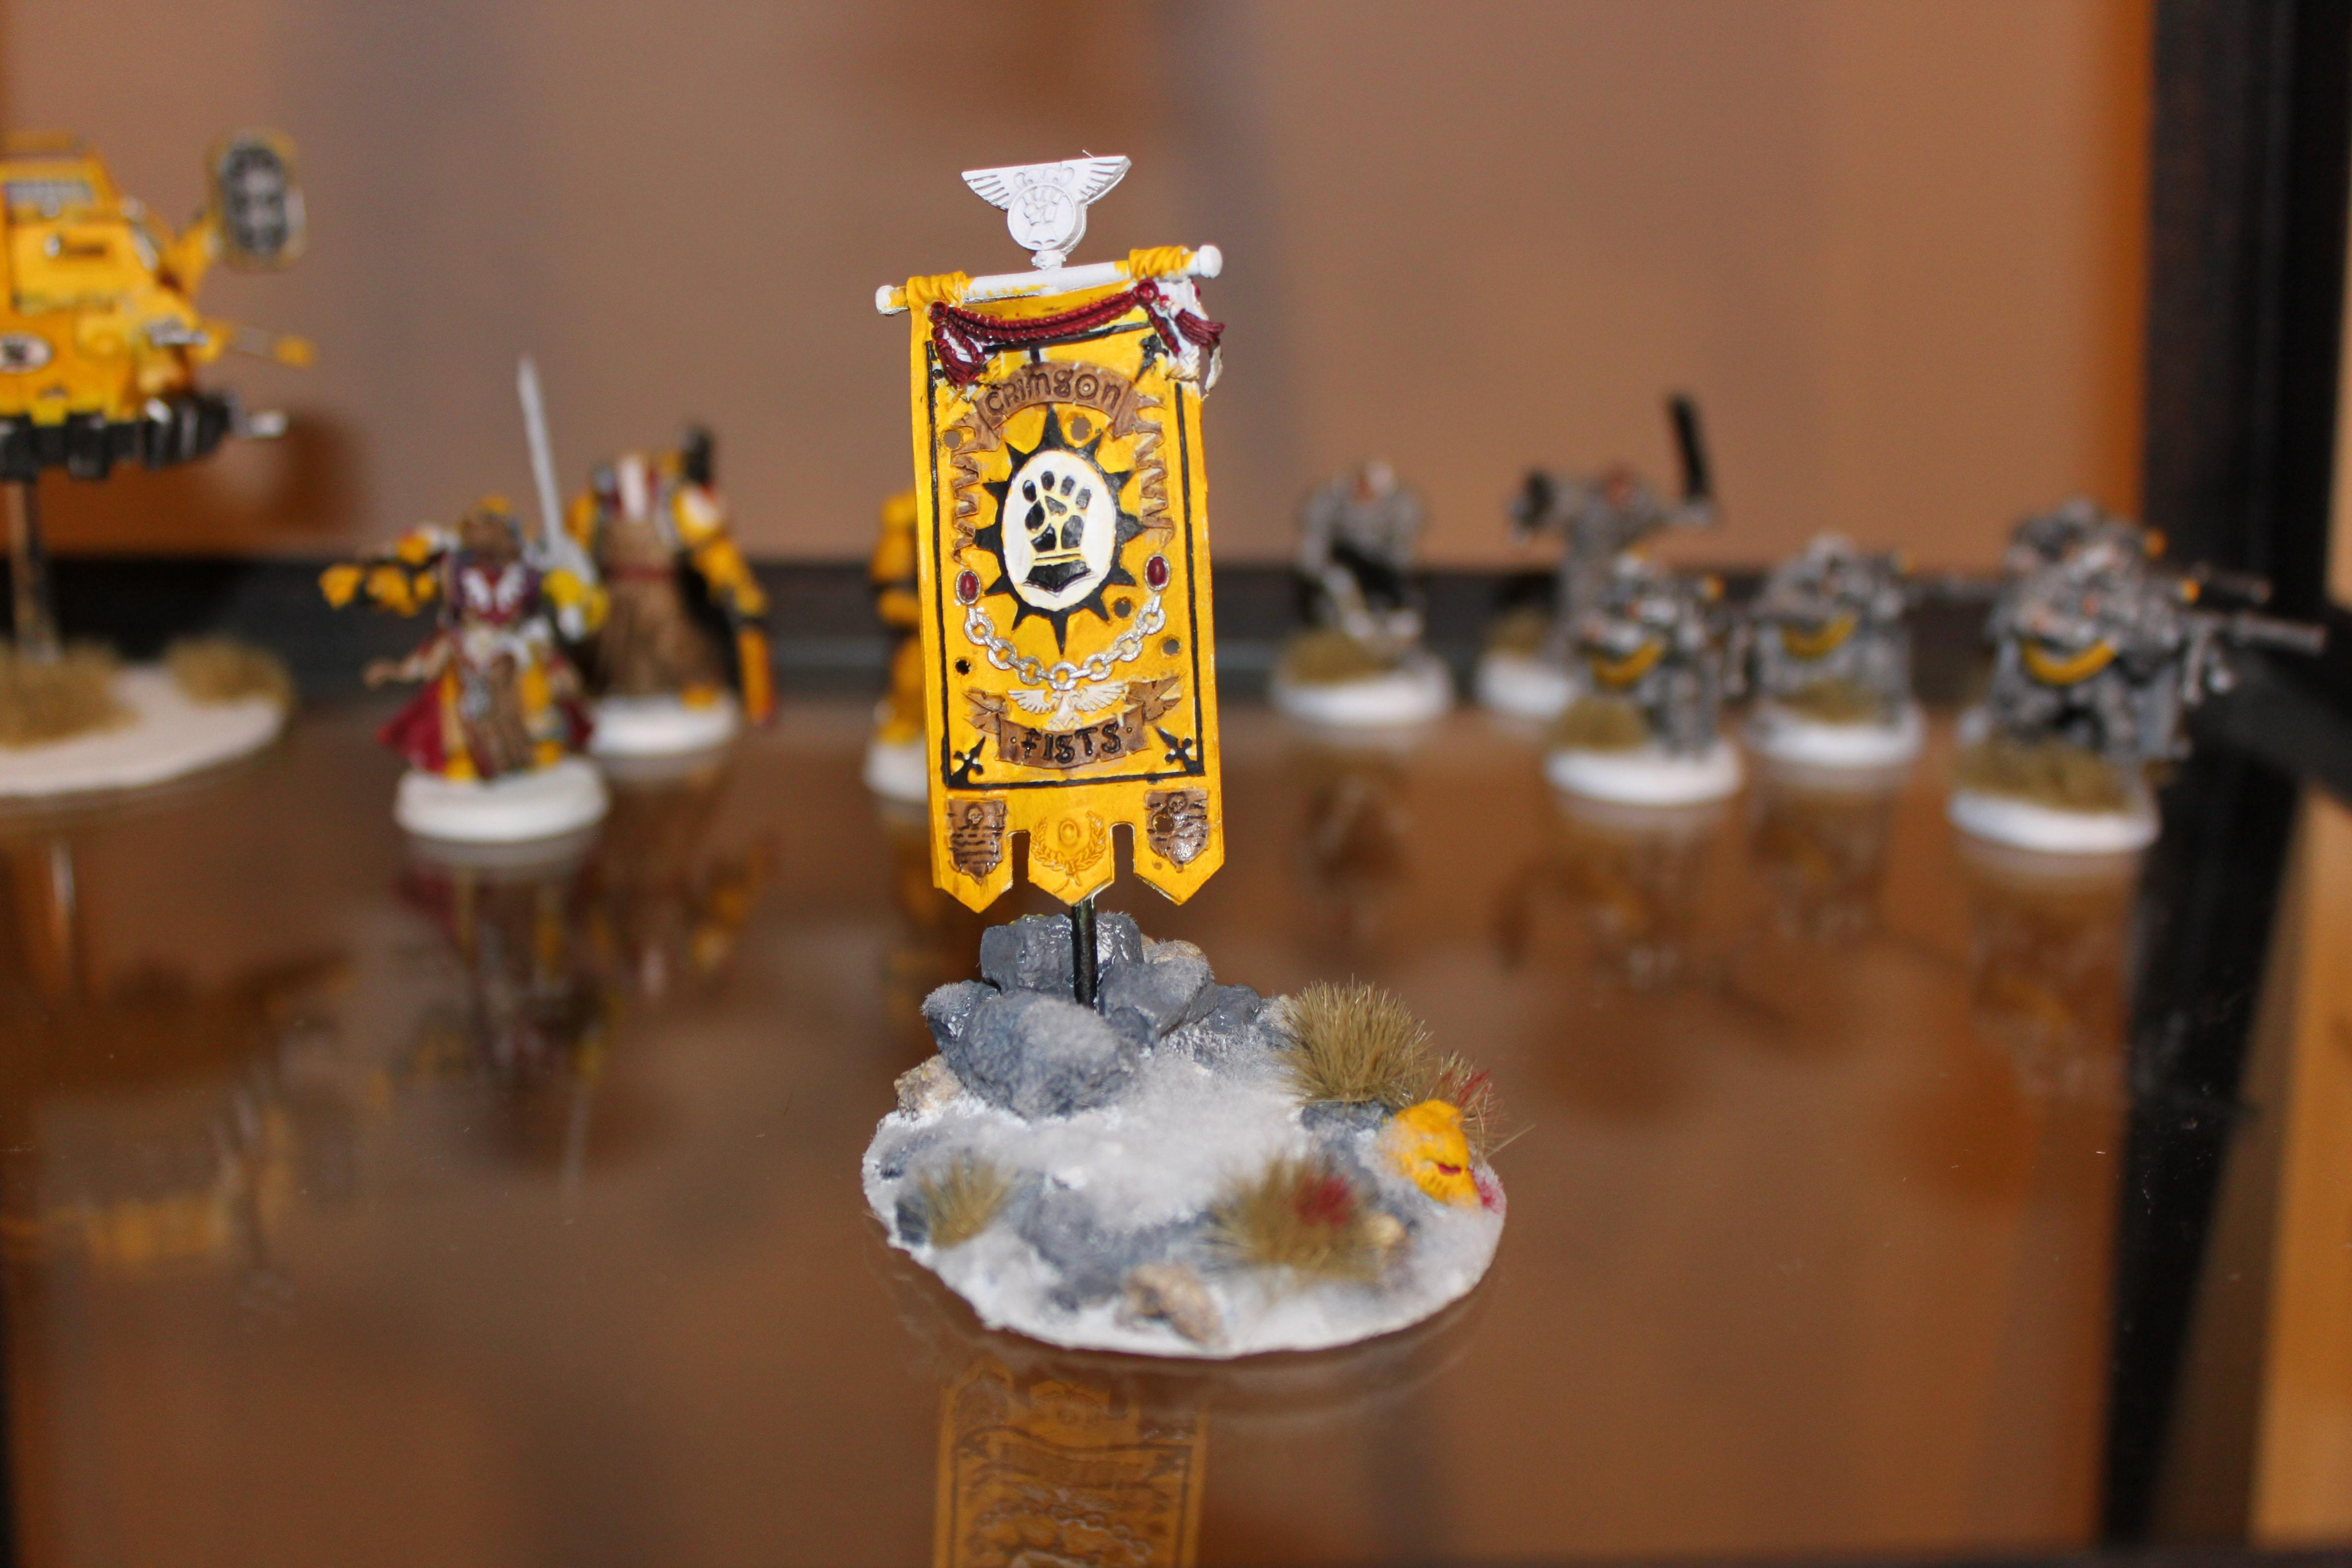 Banner, Imperial Fists, Space Marines, Warhammer 40,000